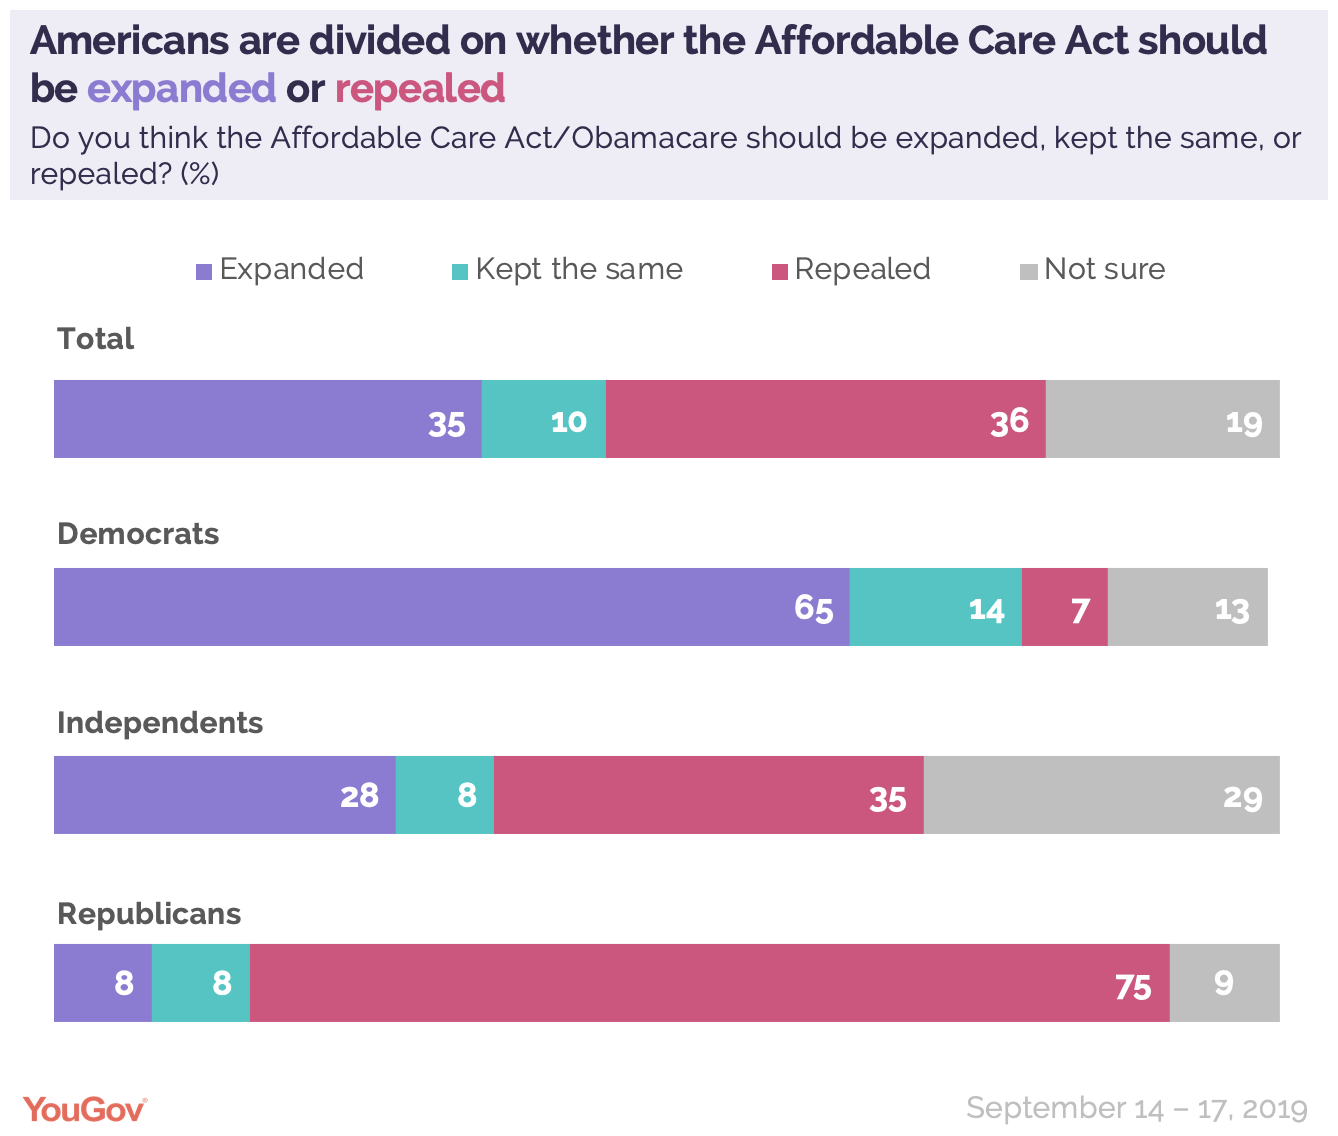 Americans are divided on whether the Affordable Care Act should be expanded or repealed